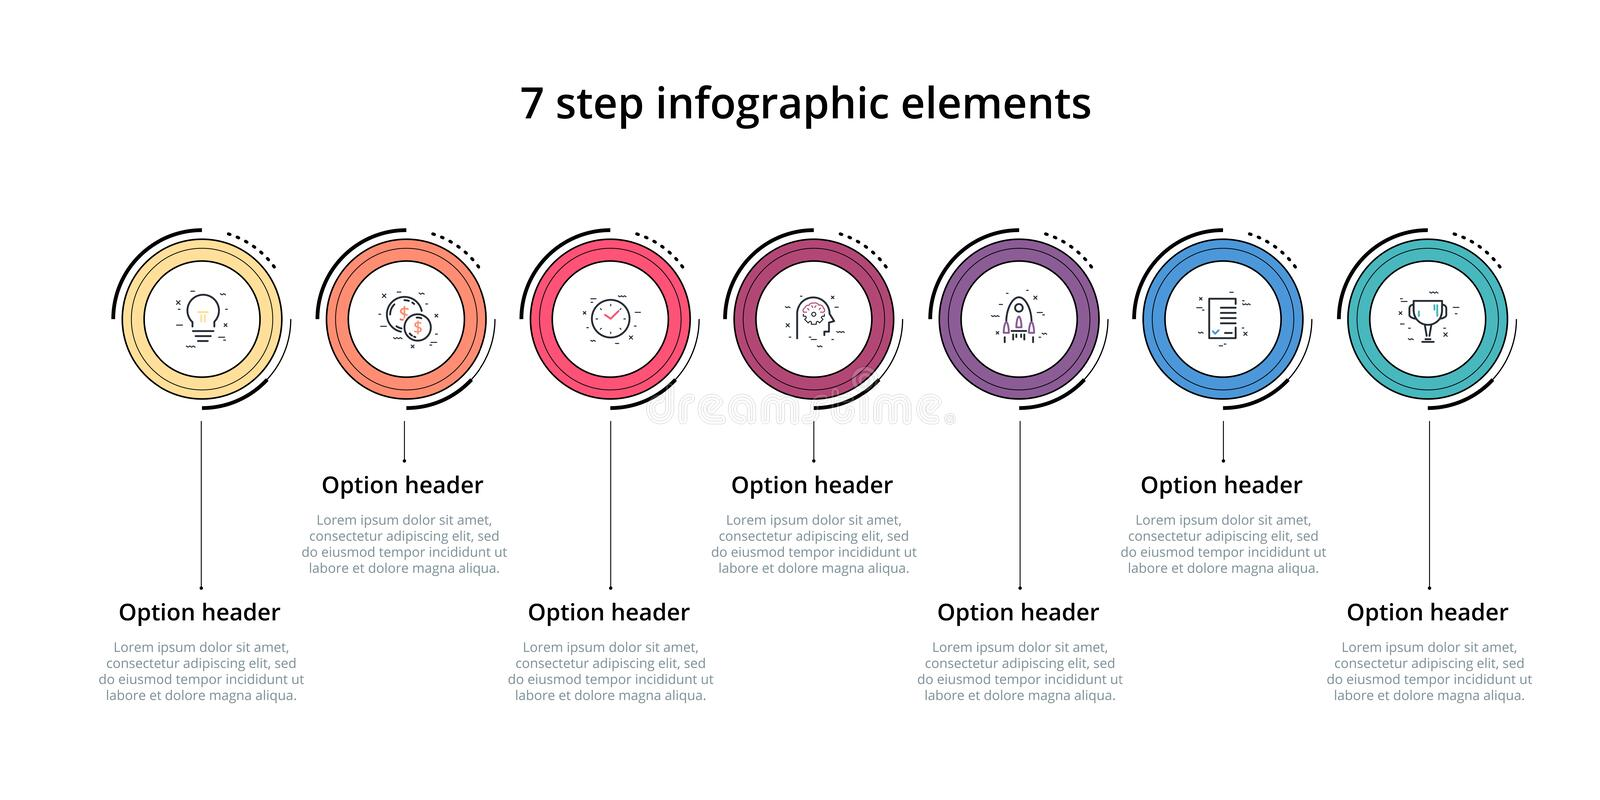 Business process chart infographic with 7 step circles. Circular corporate workflow graphic elements. Company flowchart. Presentation slide template. Vector stock illustration